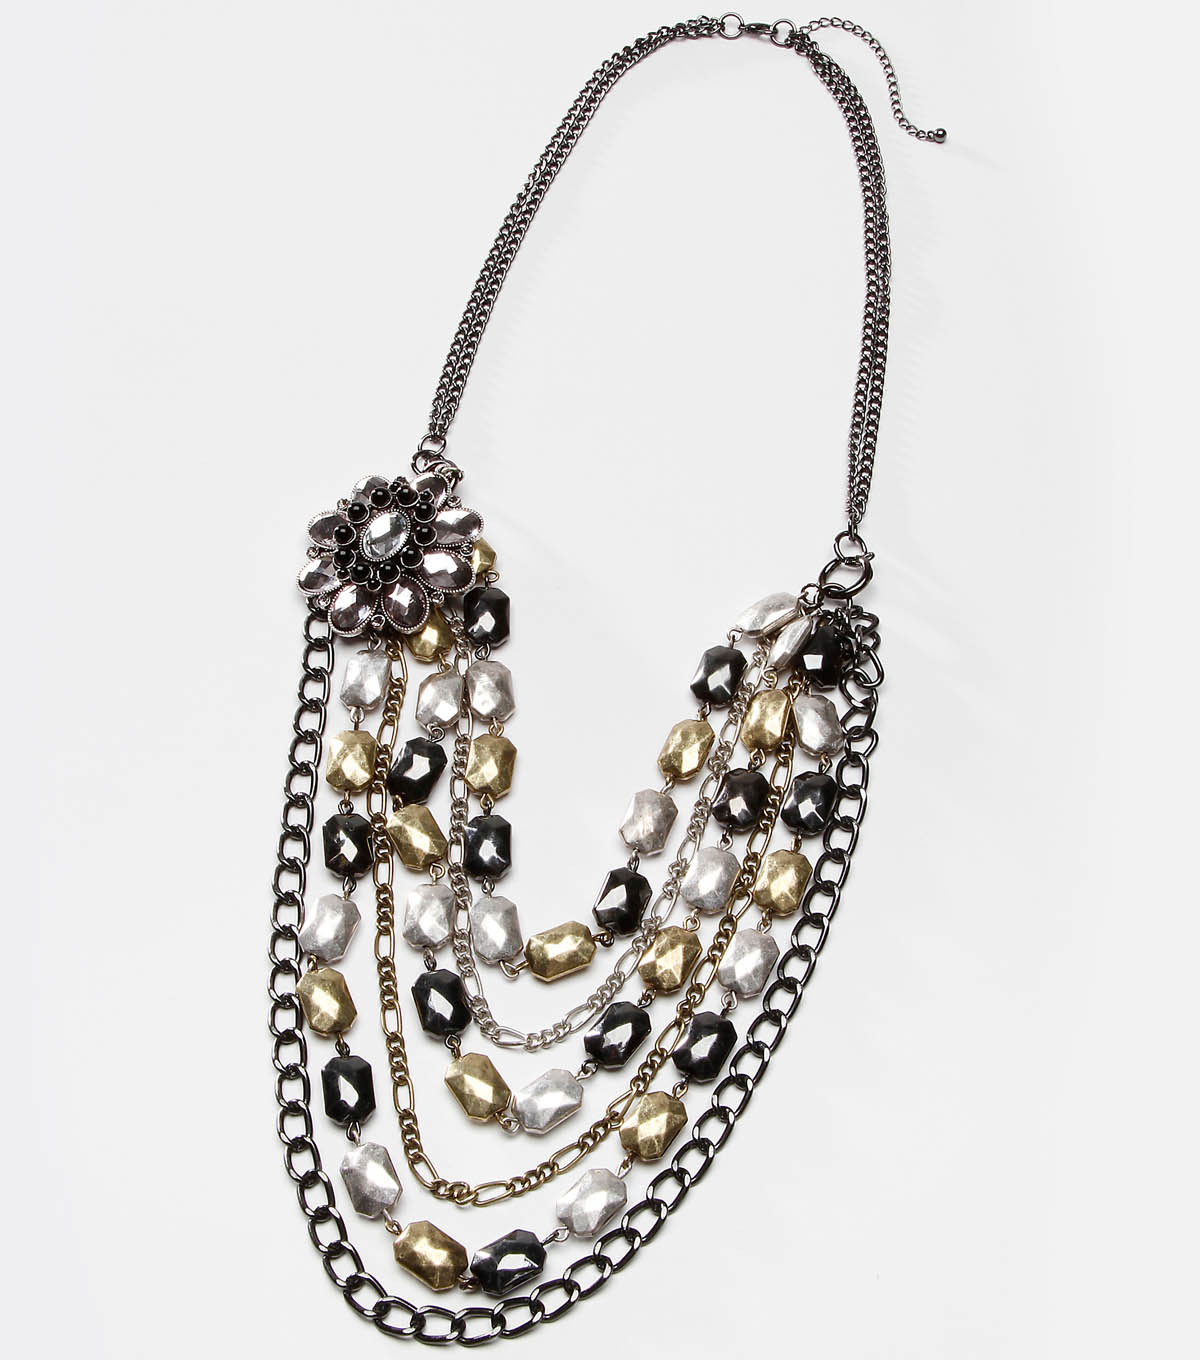 Tori spelling Noir Mixed Metal Necklace